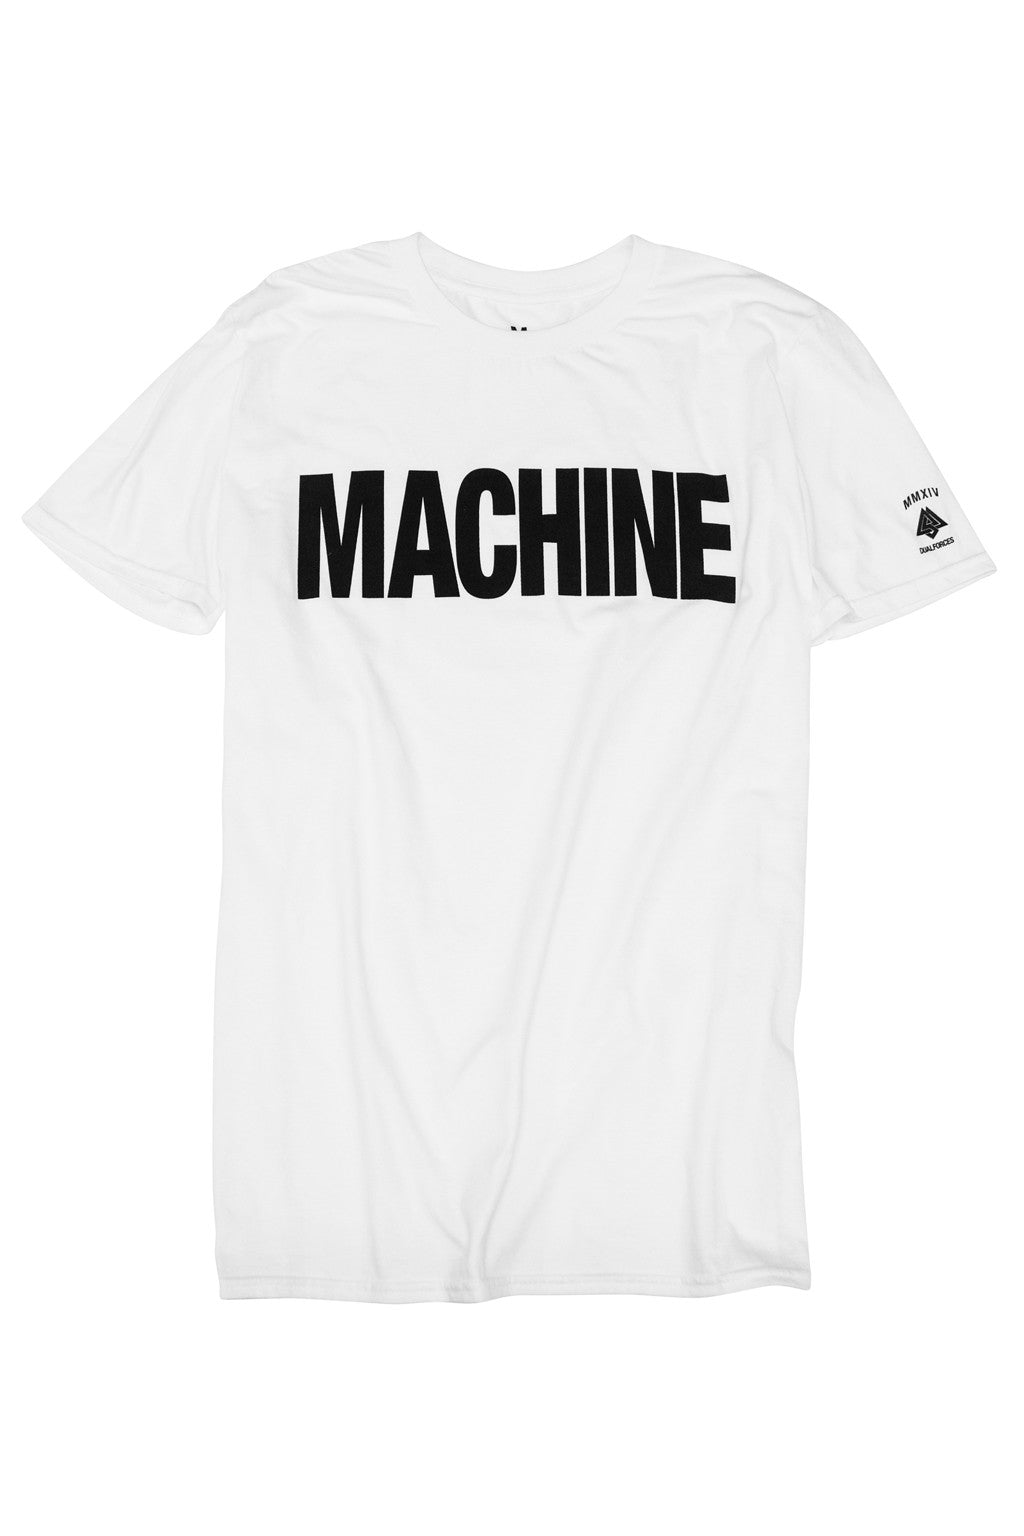 MACHINE Shirt